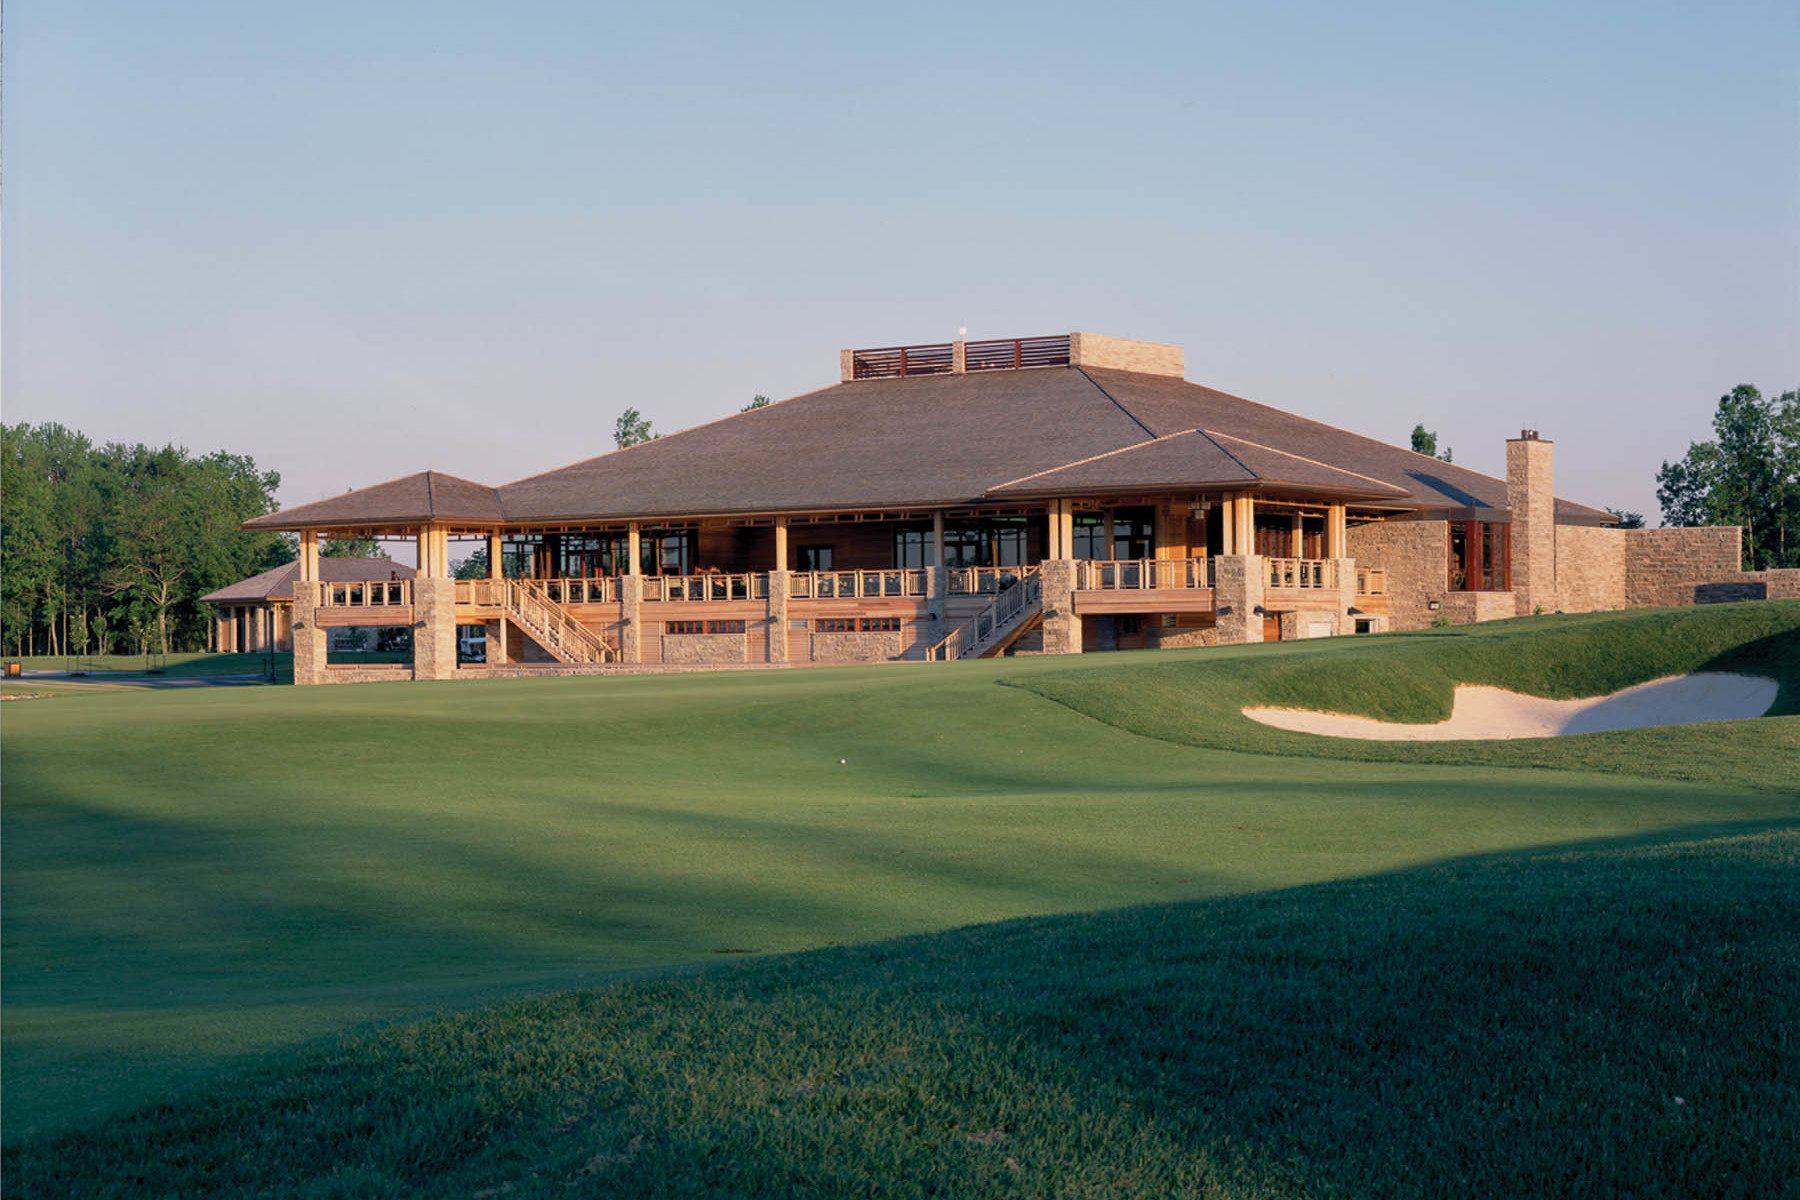 Clubhouse with golf course in foreground and trees in background